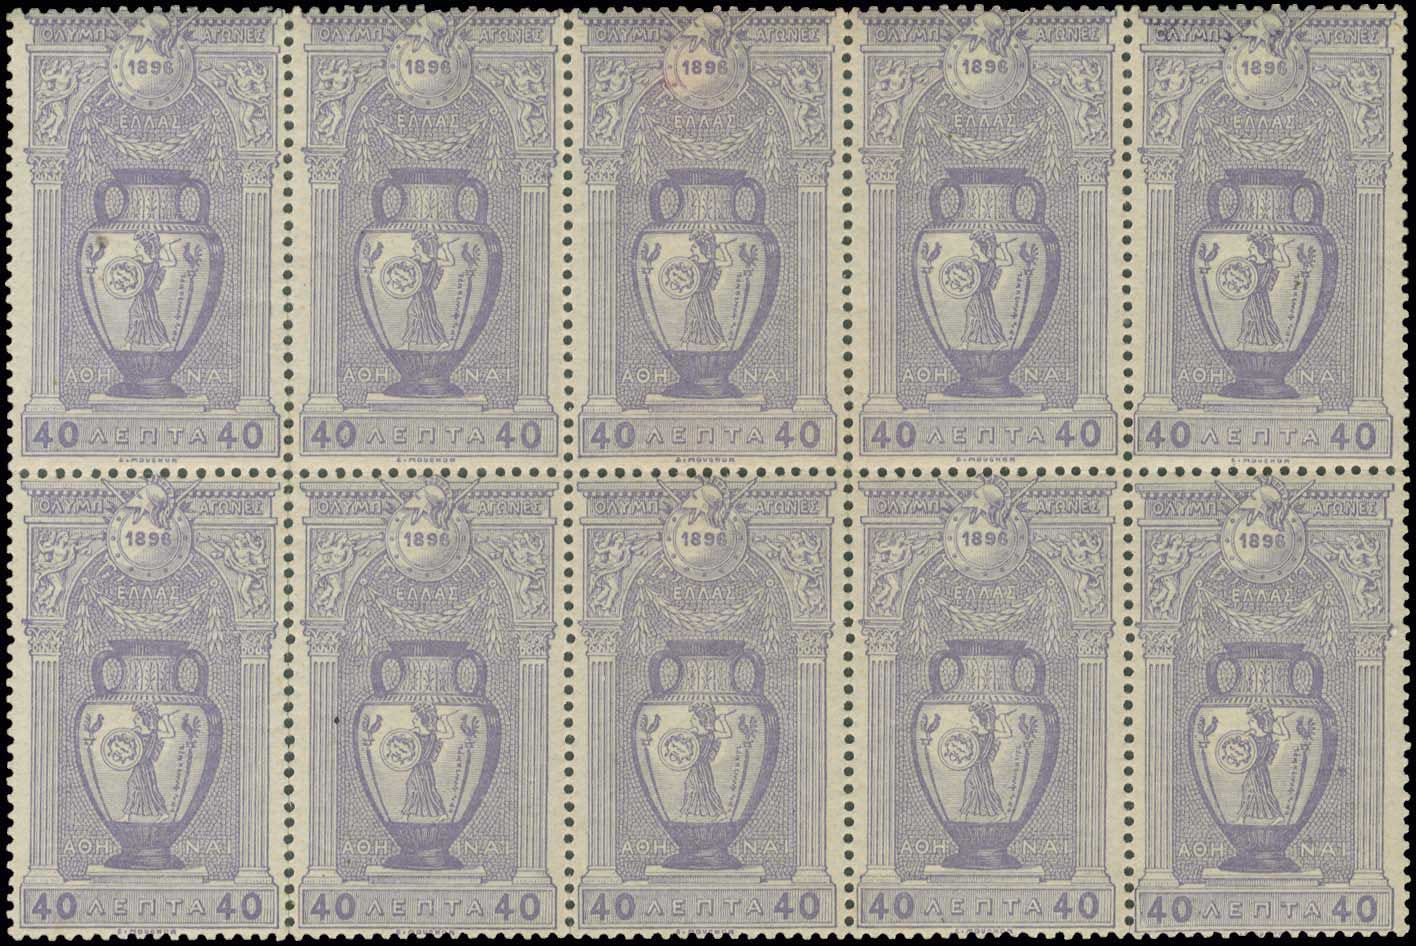 Lot 310 - -  1896 FIRST OLYMPIC GAMES 1896 first olympic games -  A. Karamitsos Public Auction 635 General Stamp Sale